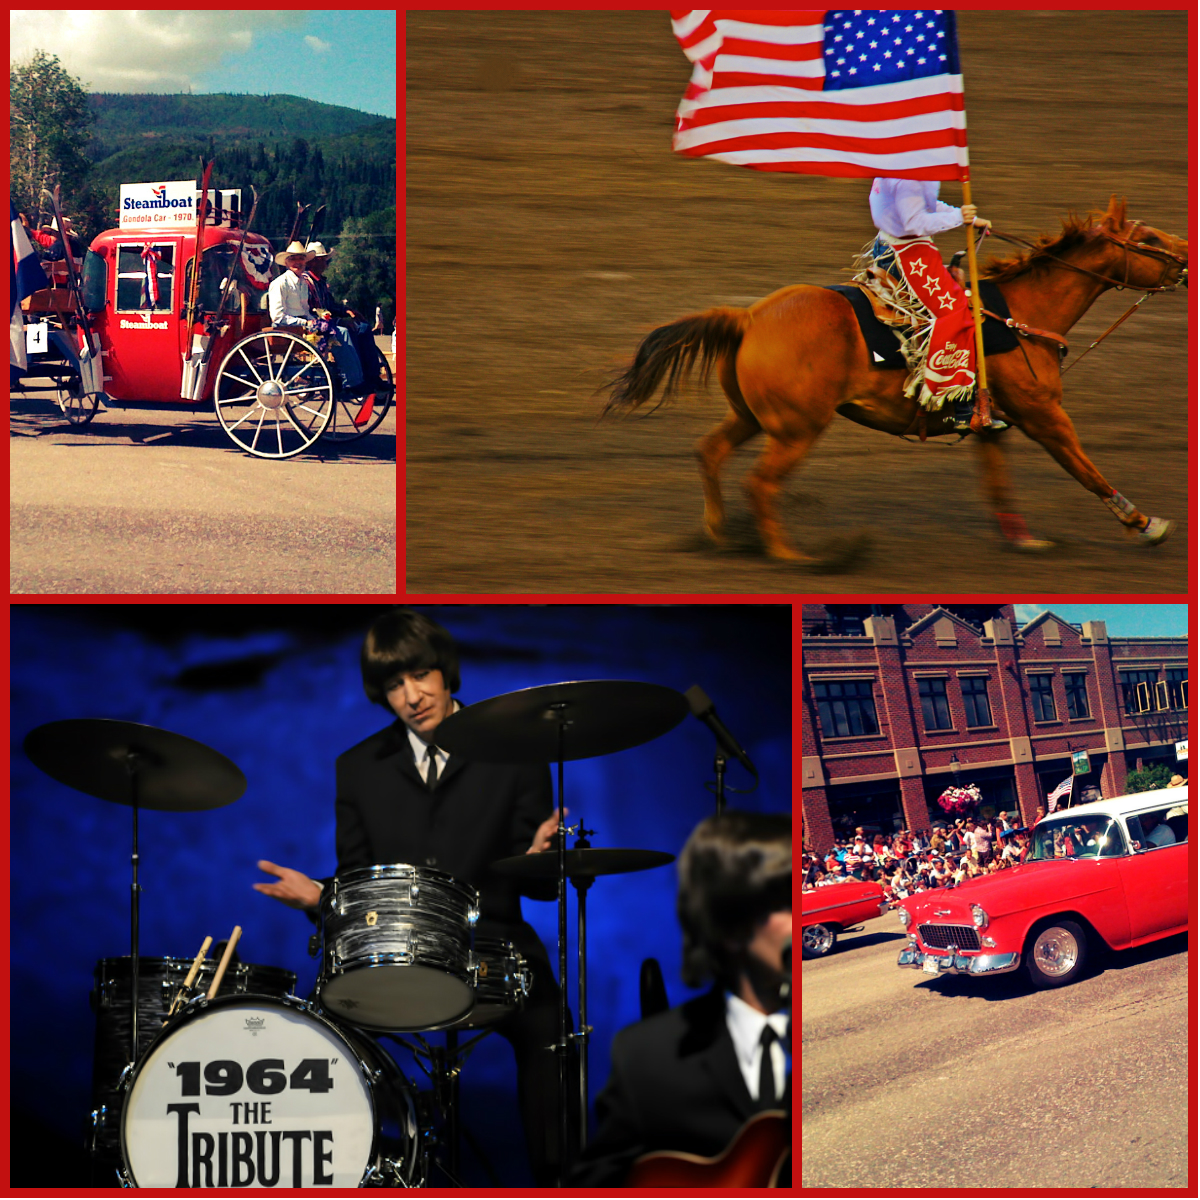 Steamboat Springs 4th of July Events